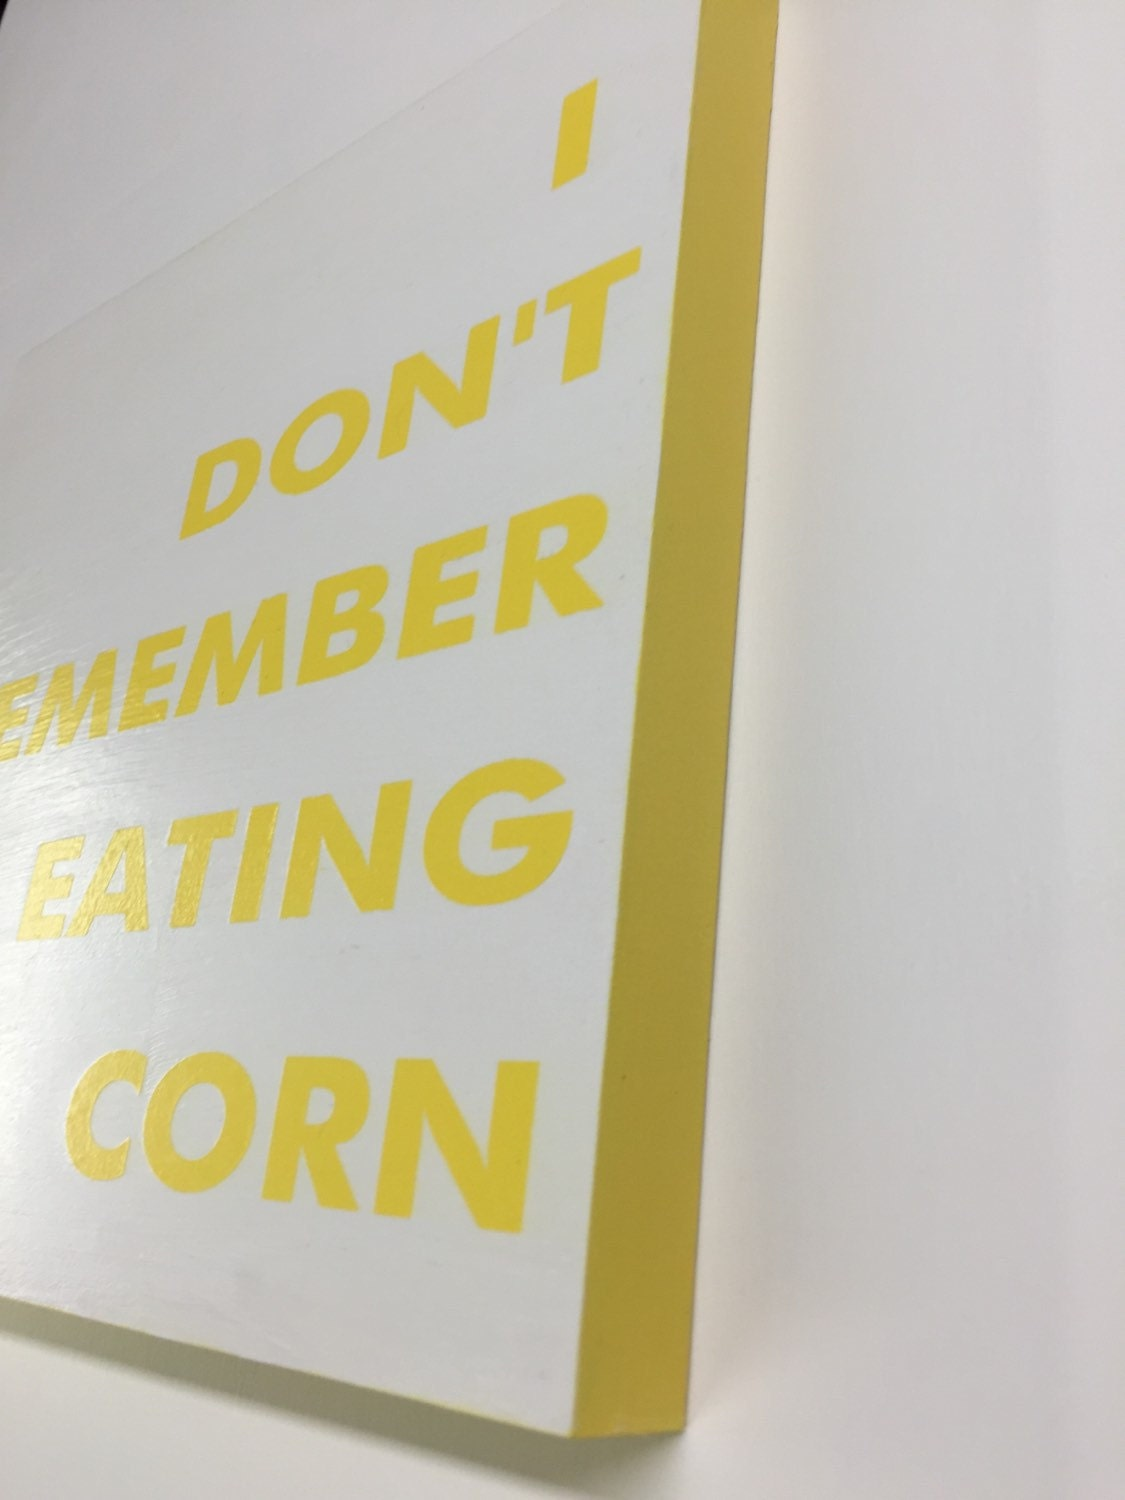 I Don\'t Remember Eating Corn, Funny Bathroom Signs, Bathroom Sign ...